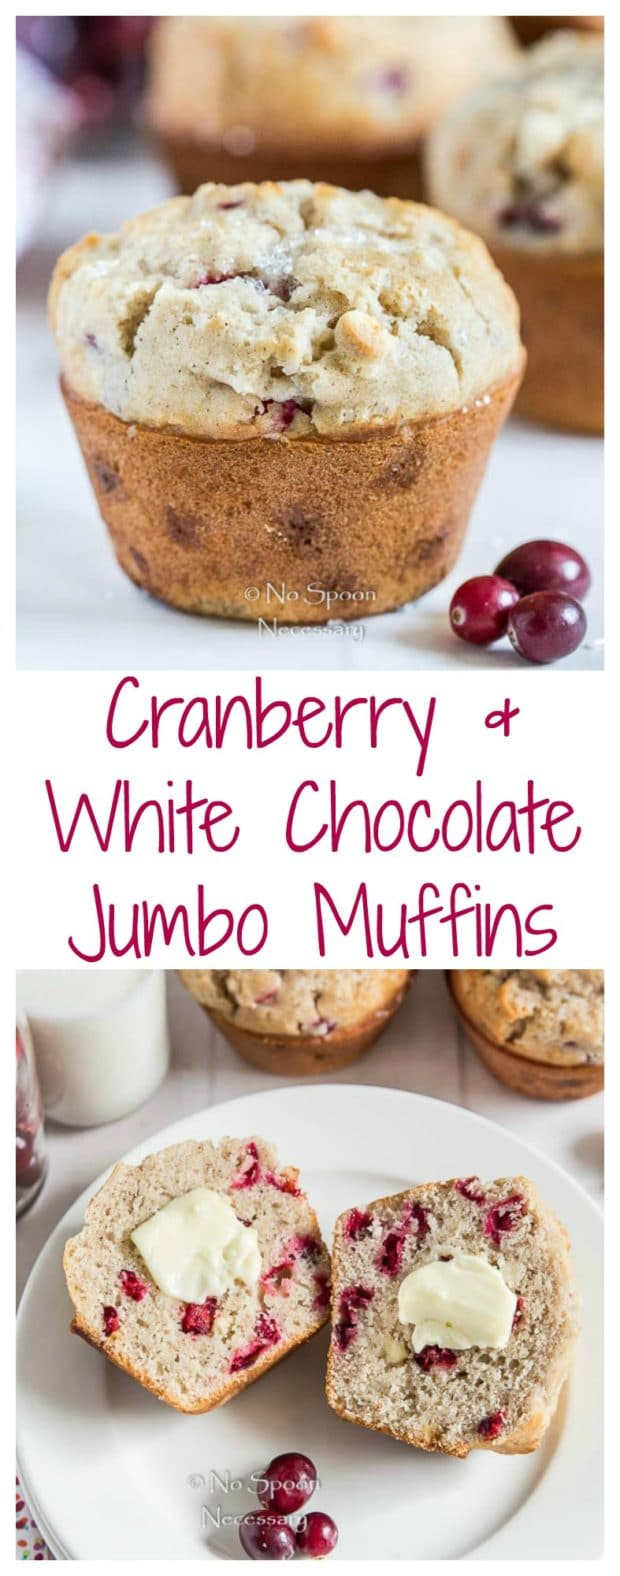 Cranberry & White Chocolate Jumbo Muffins - long pin 2